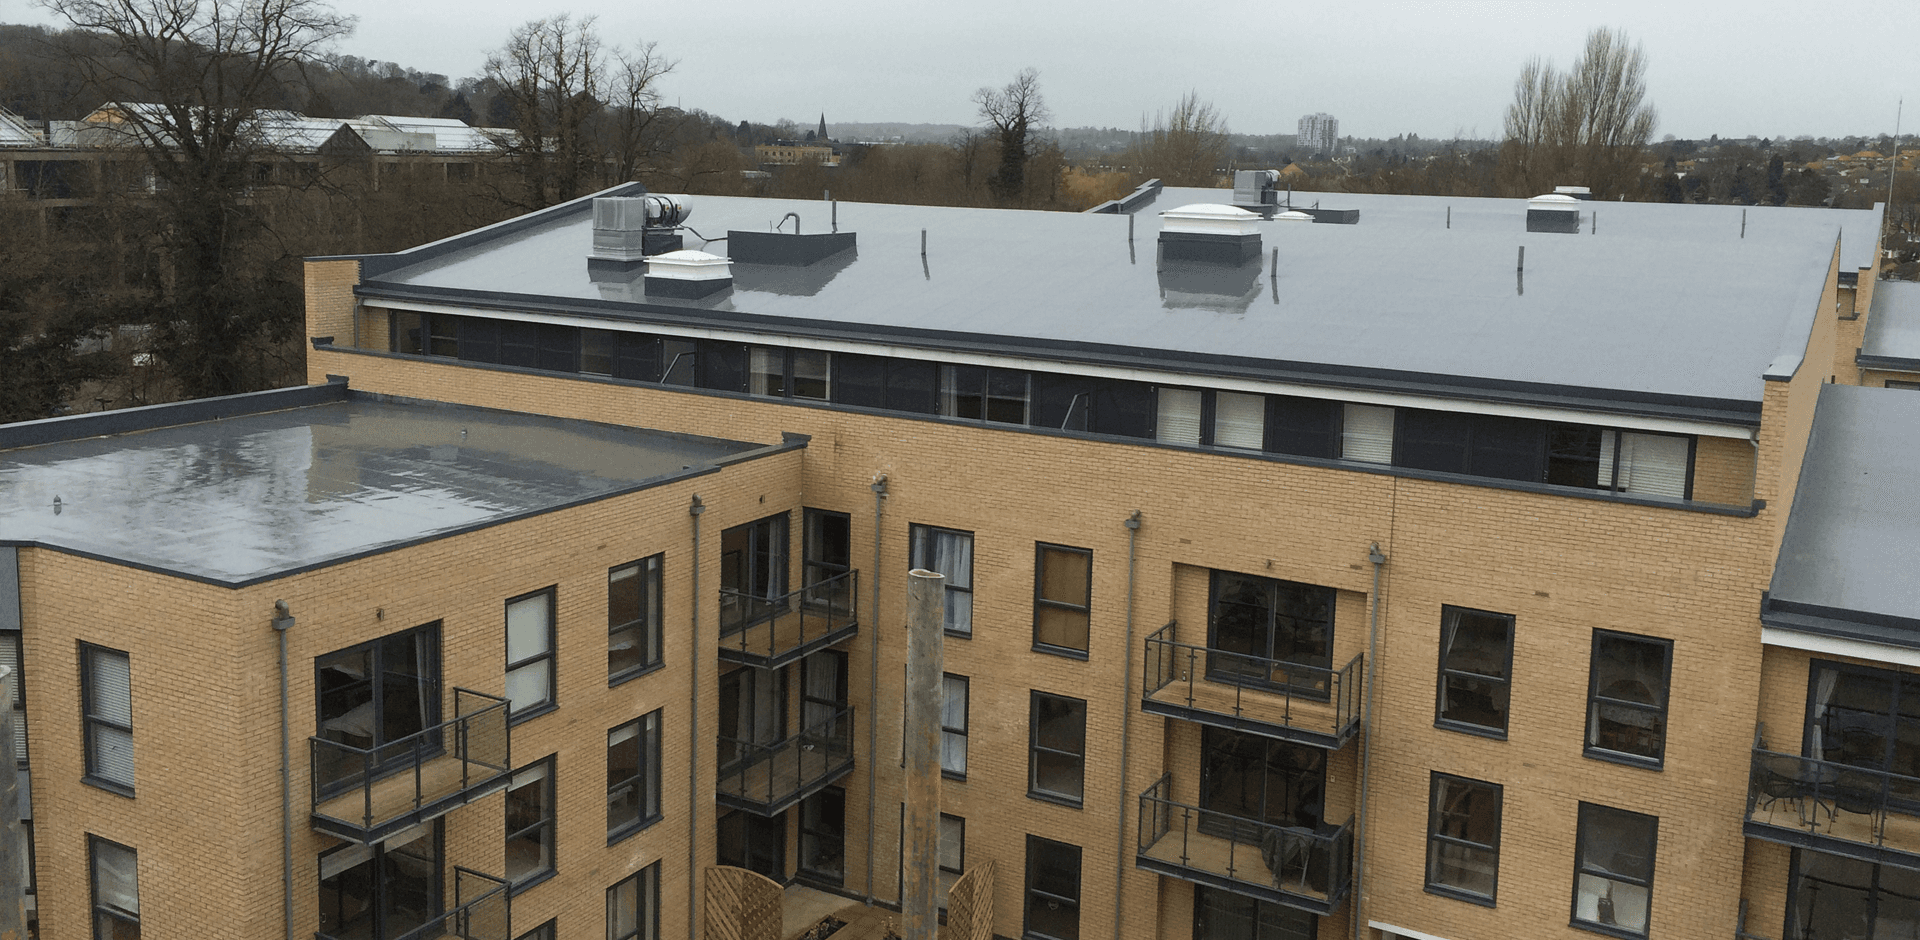 The flat roof on a block of flats and appartments